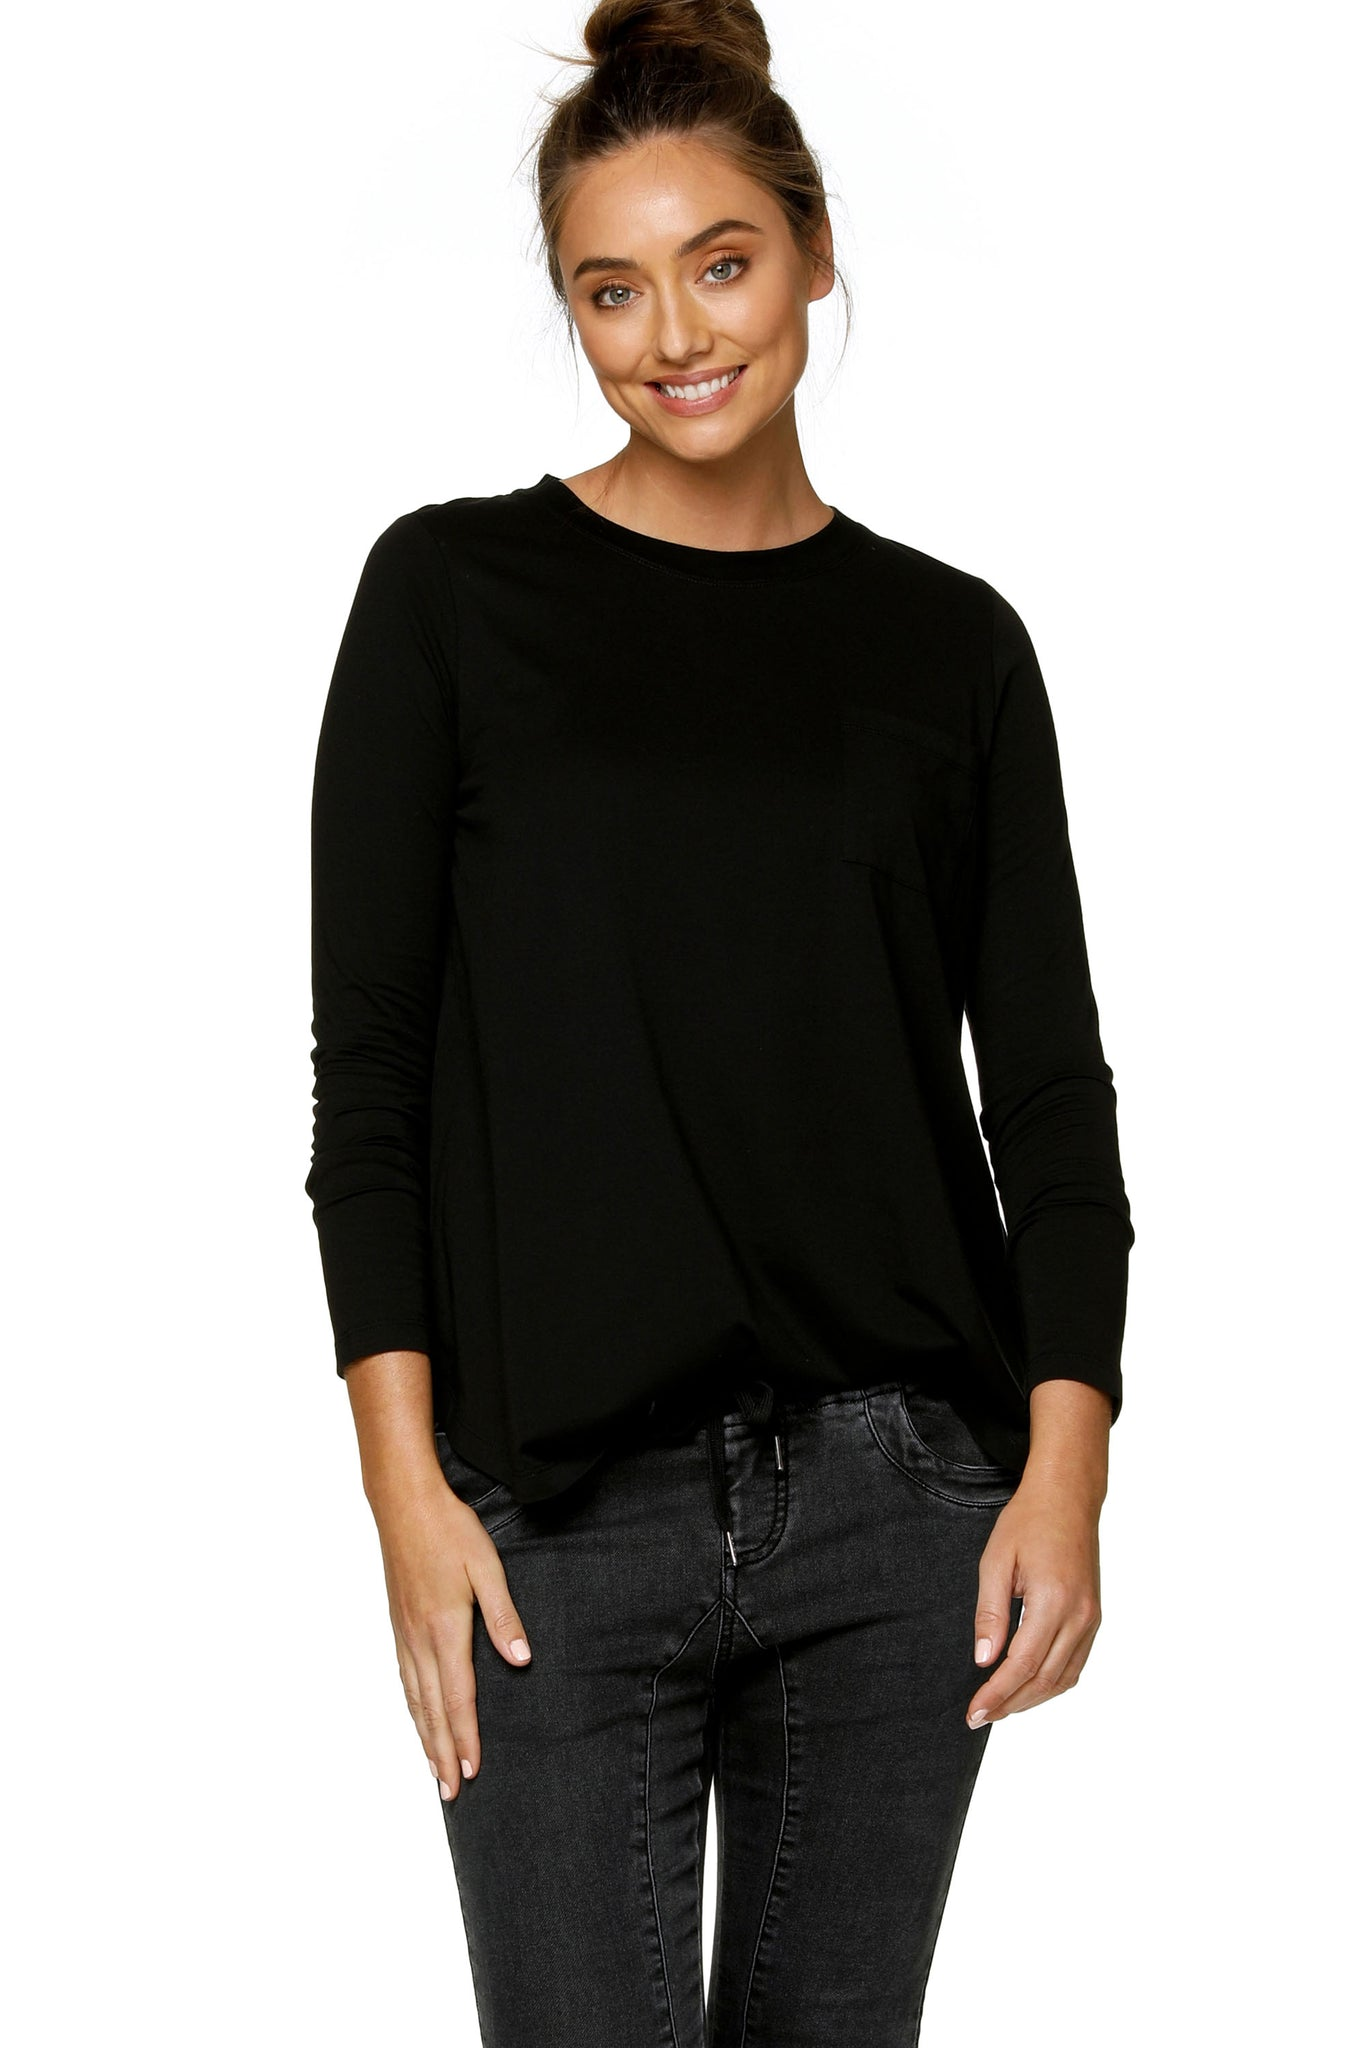 Maternity Long Sleeve Top - Black 8